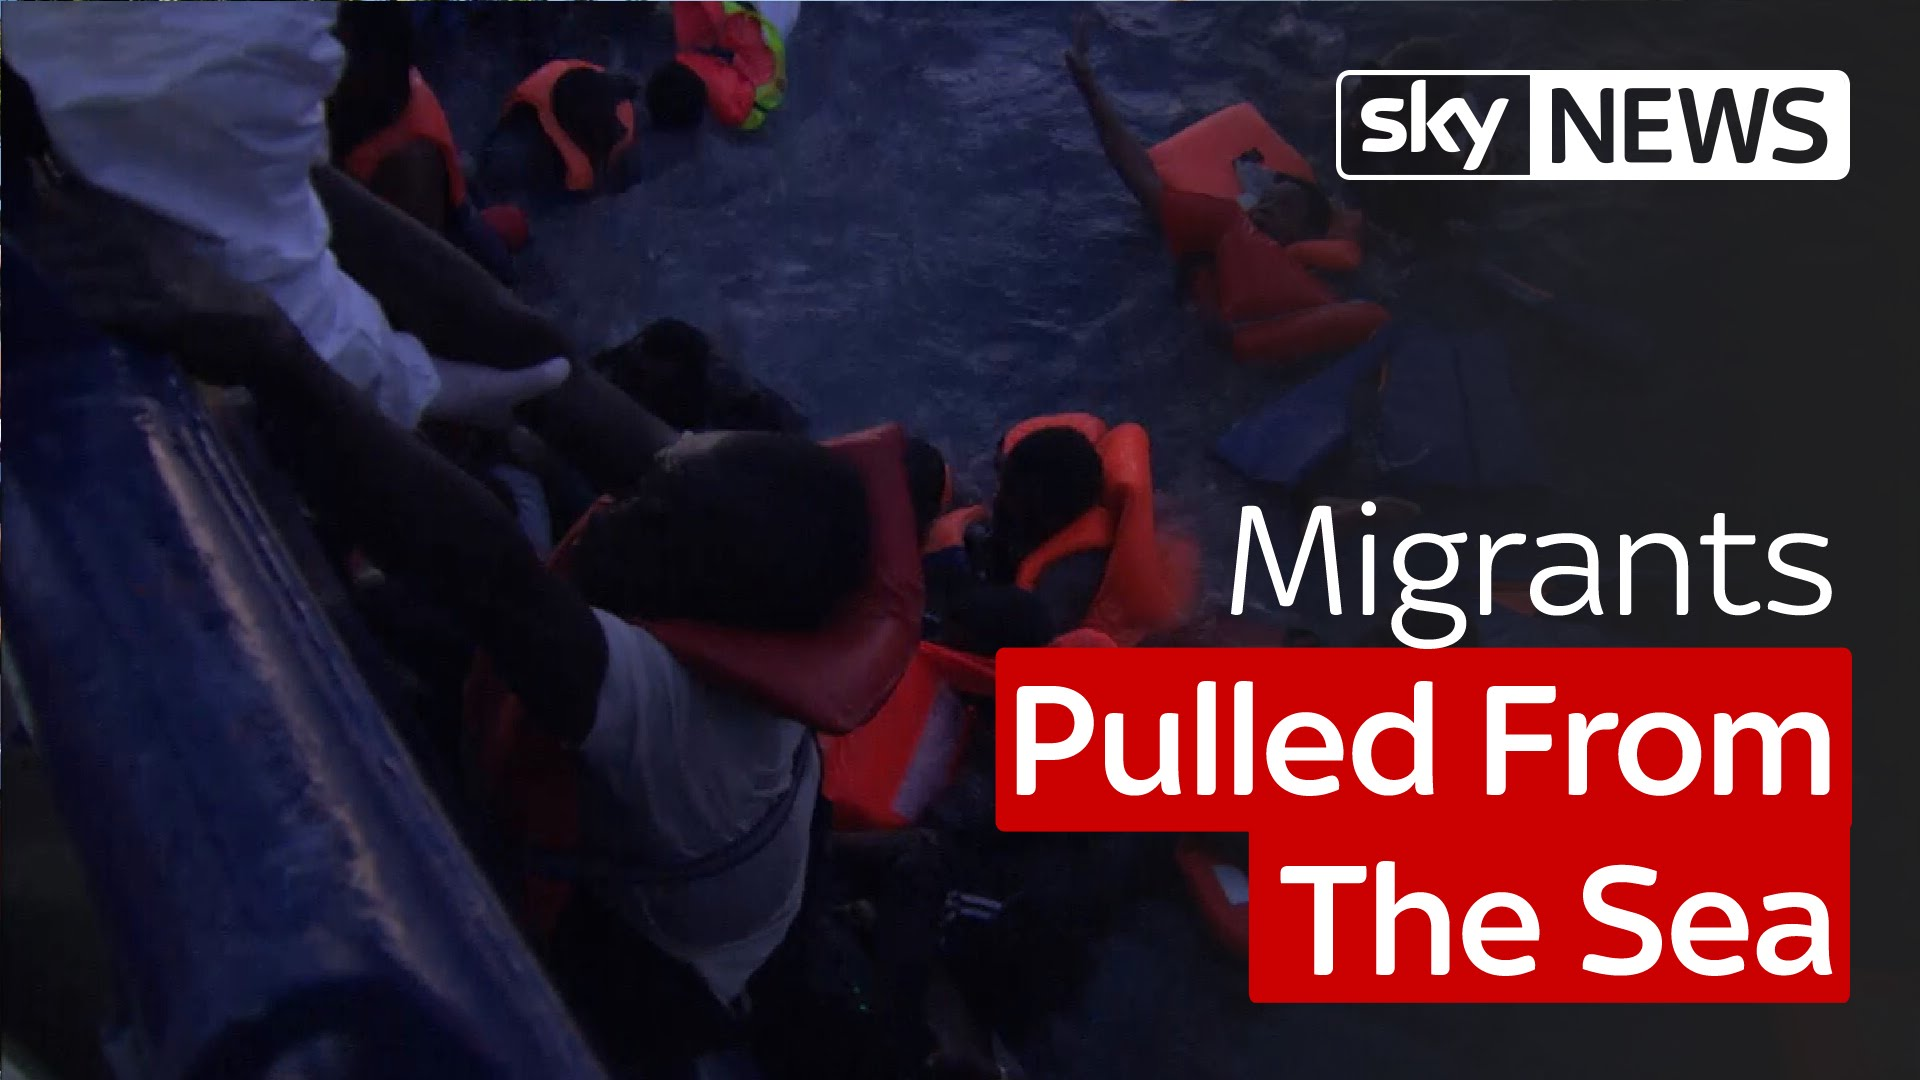 Migrants Pulled From The Sea 9